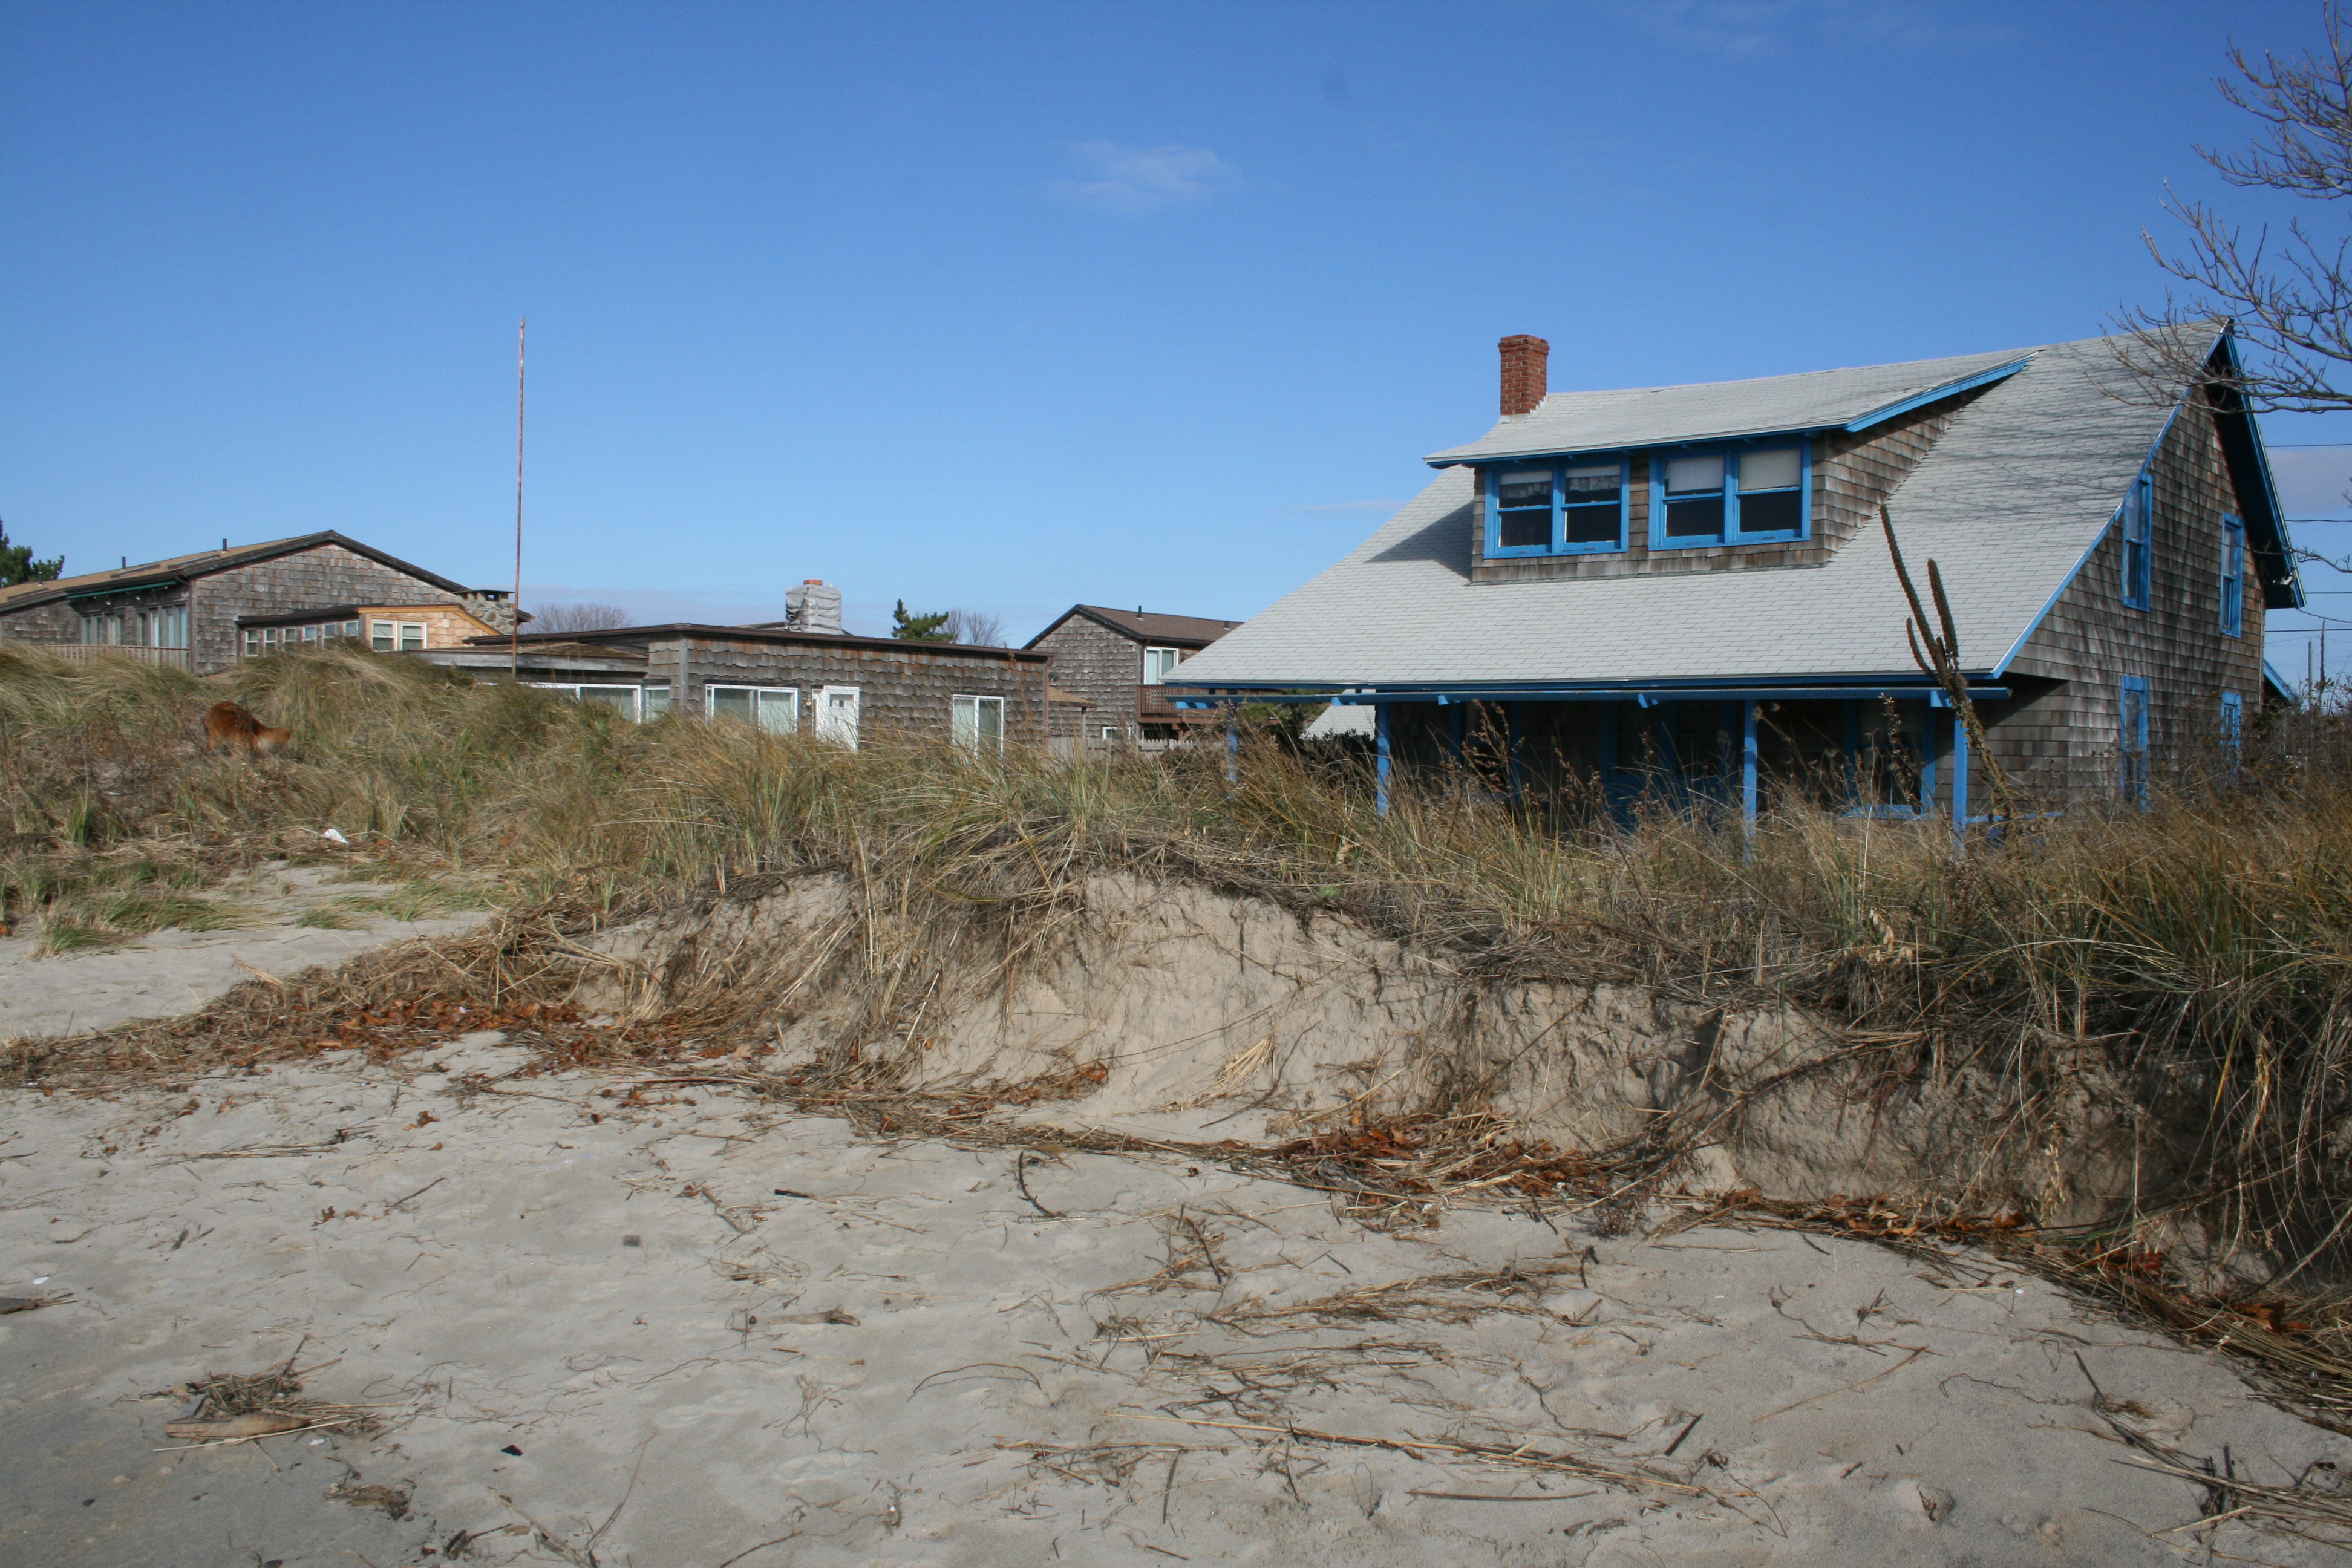 Dunes protected this Chalker Beach cottage.